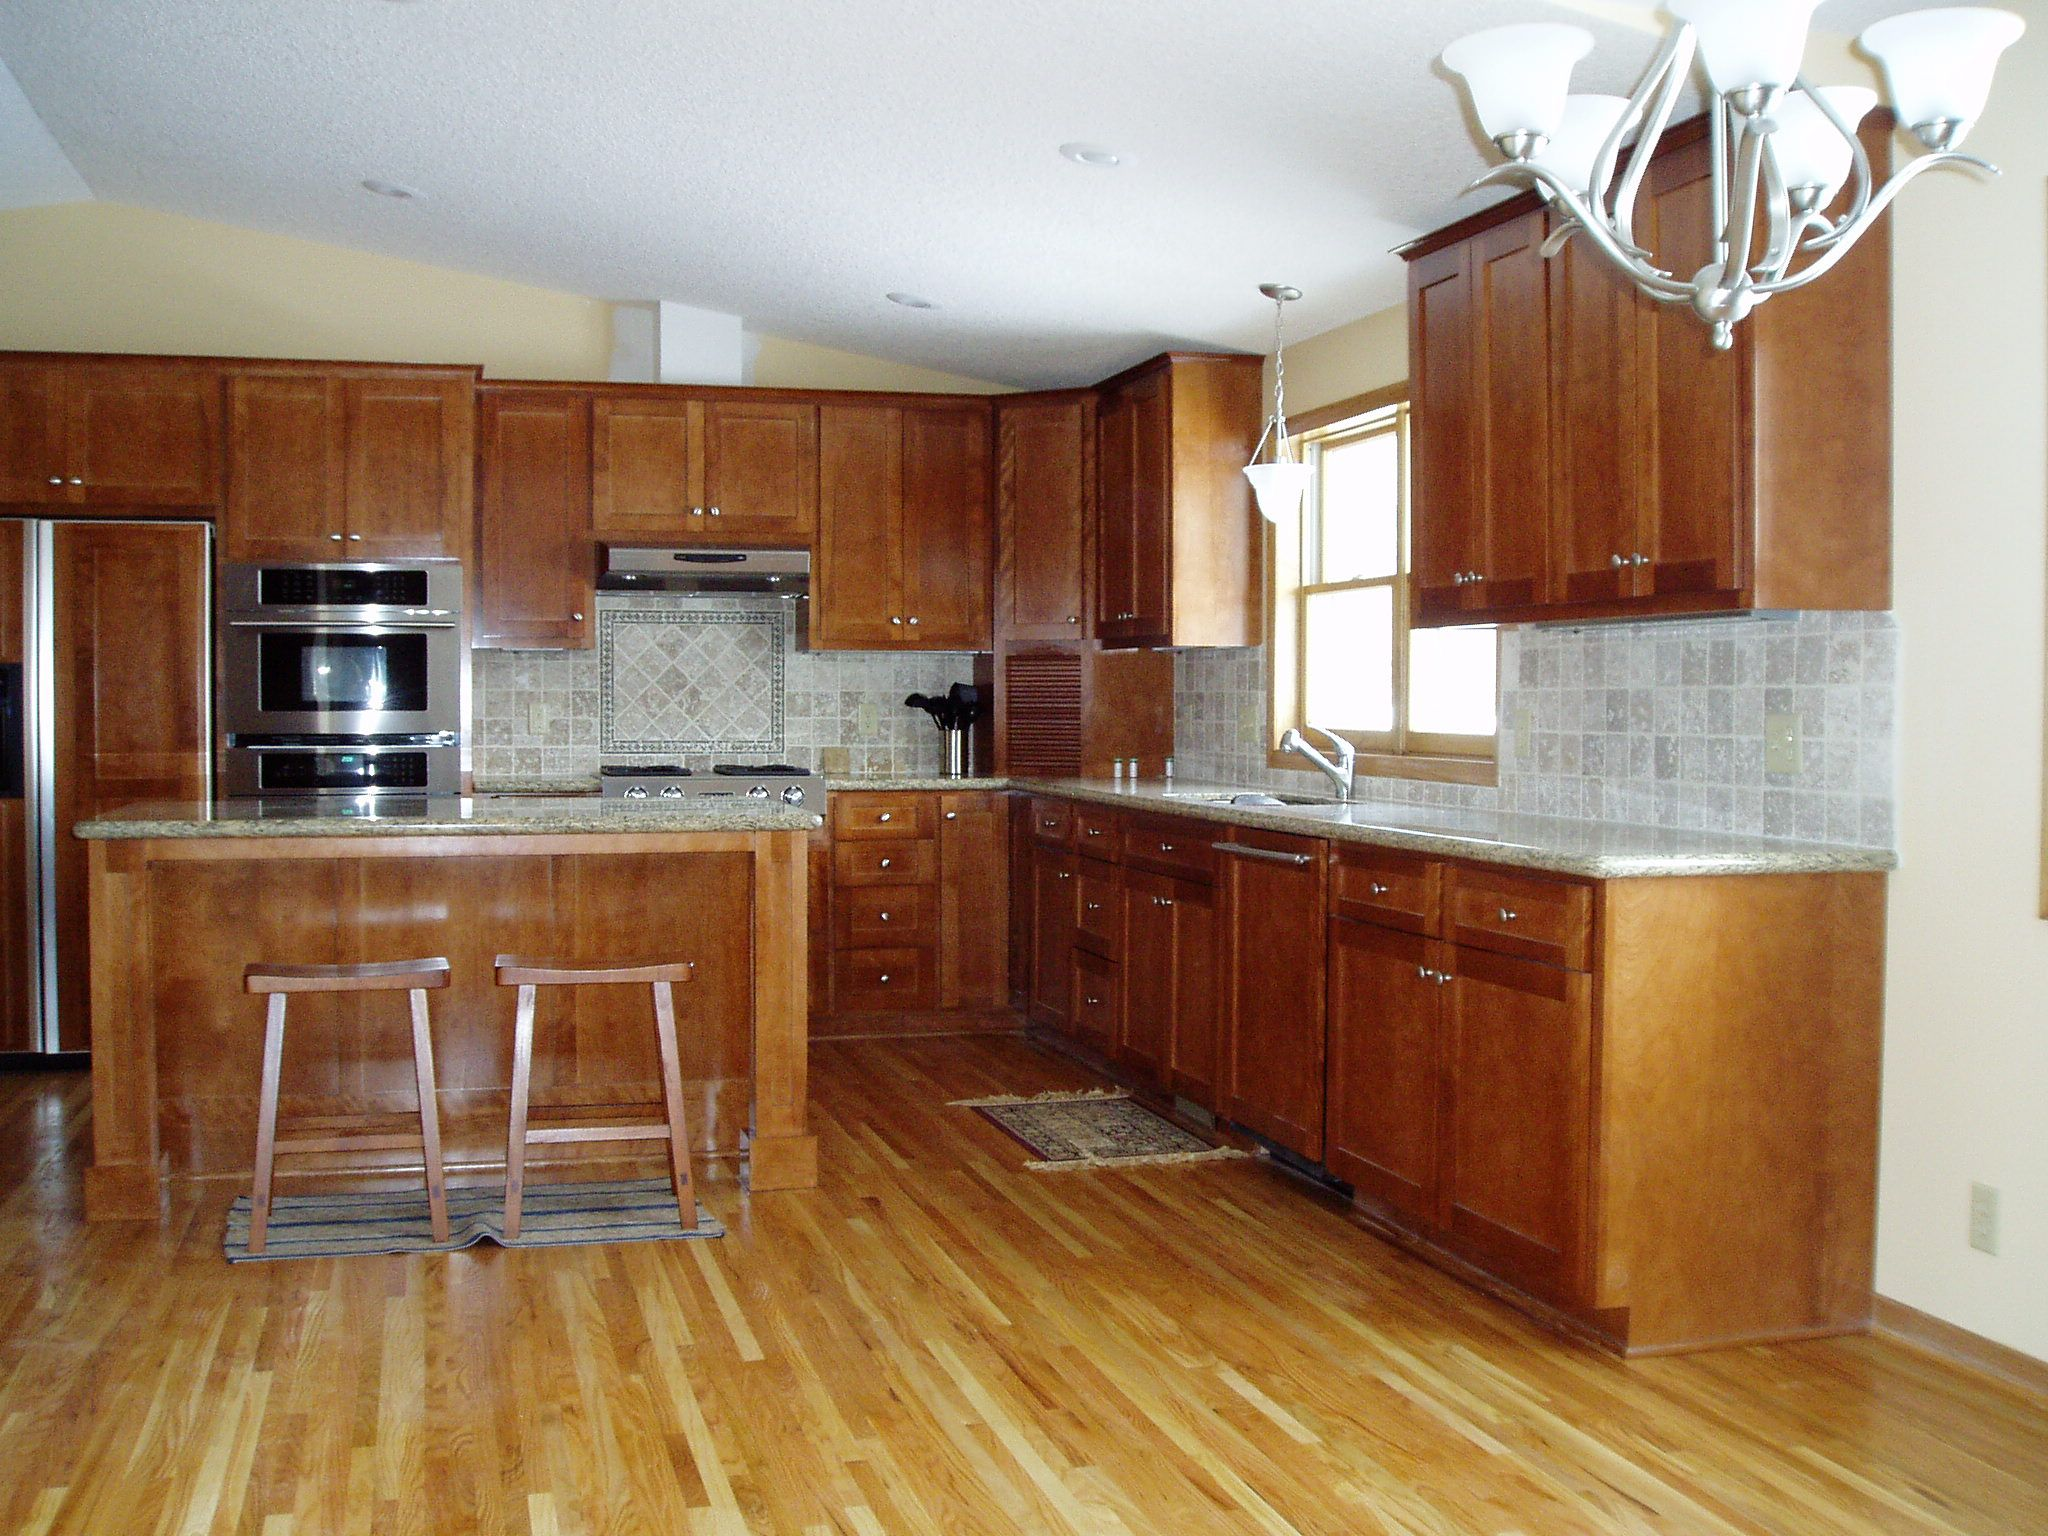 Wood Floor Kitchen Wood Flooring That Goes Well With Honey Oak Cabinets Dream Home